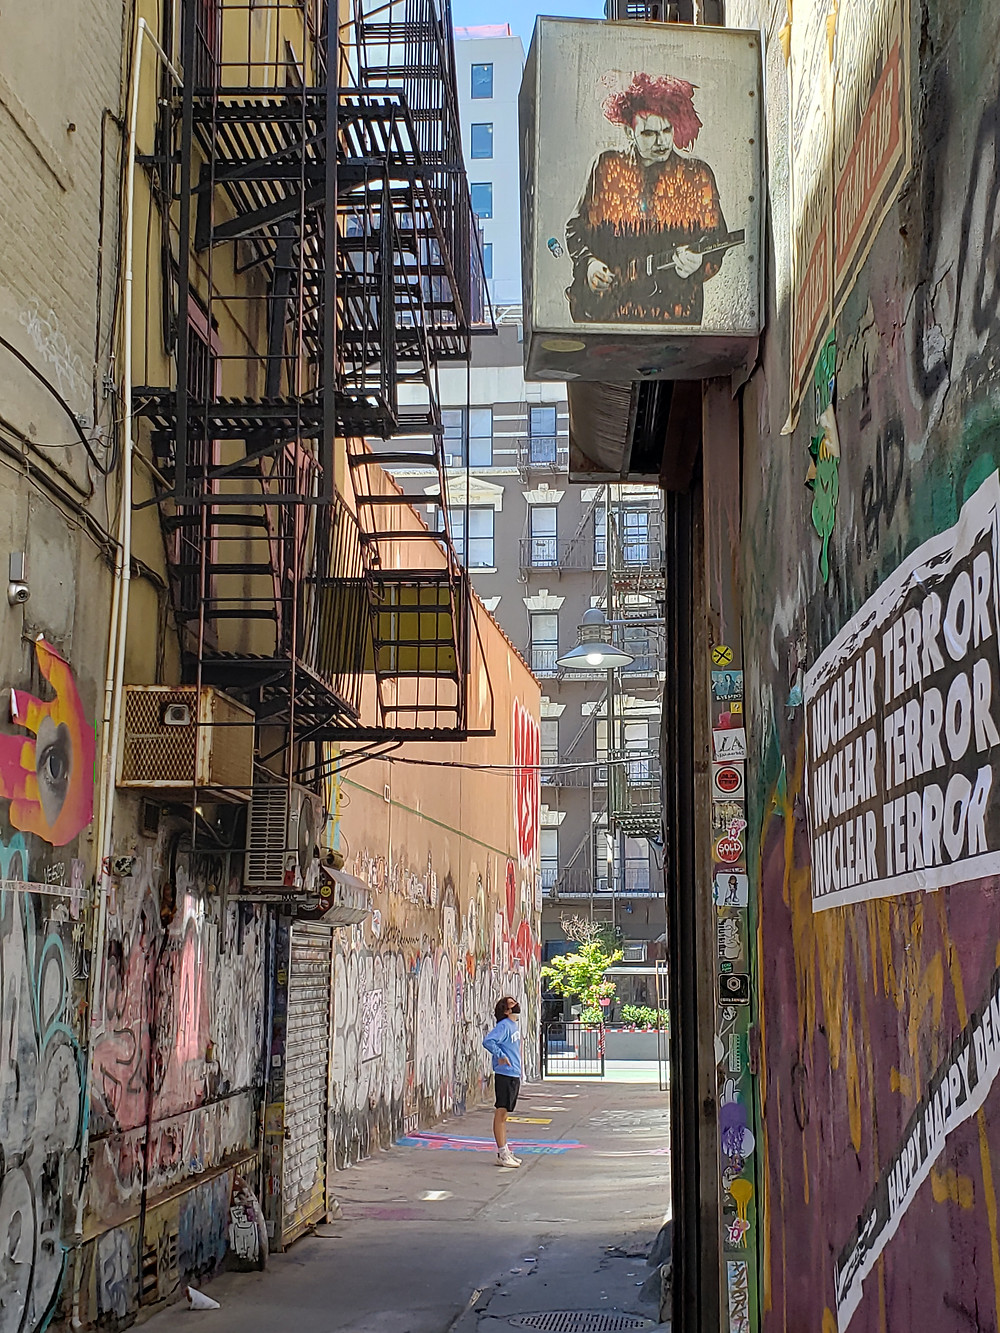 Lower East Side alley in New York